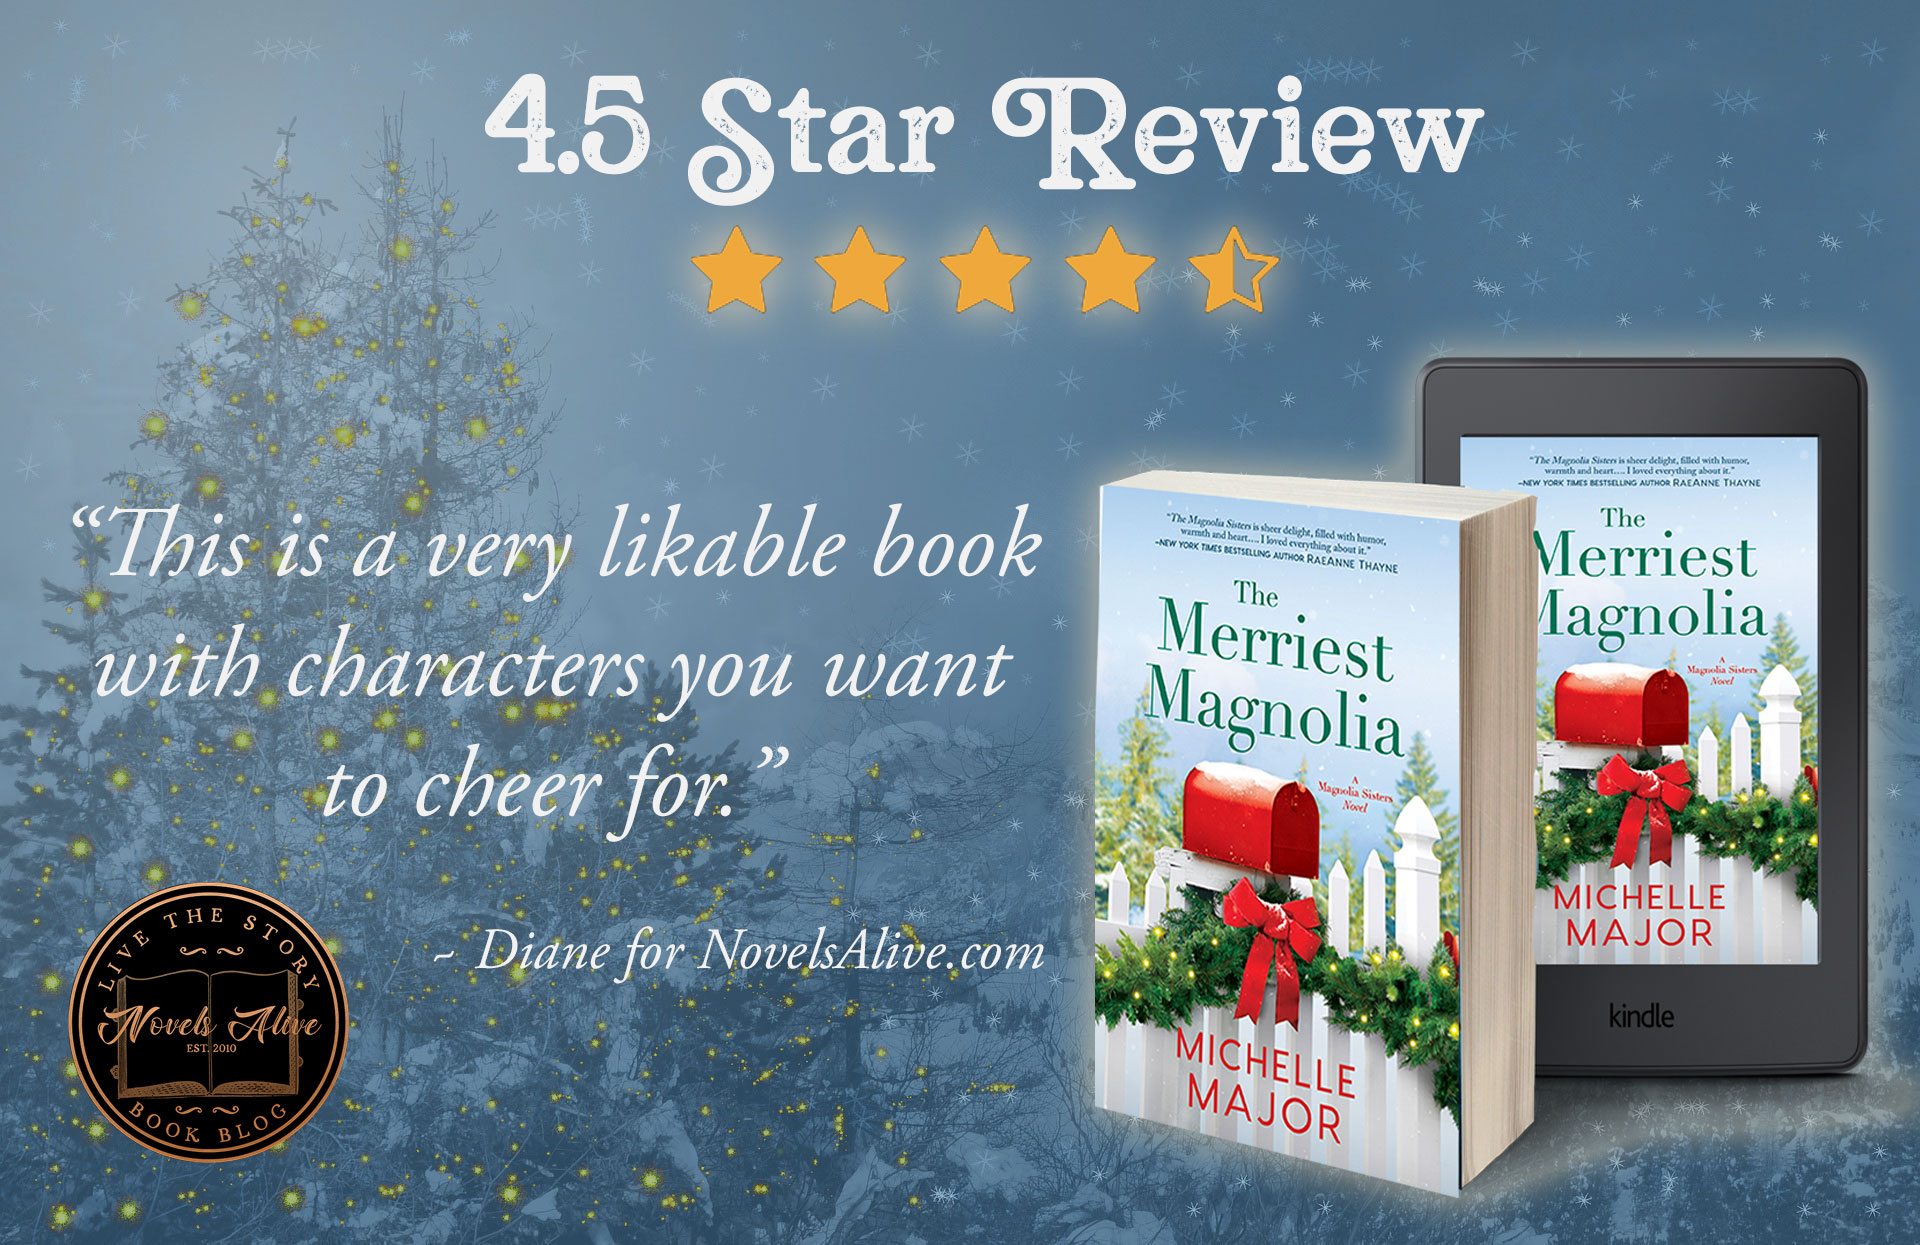 The Merriest Magnolia Review